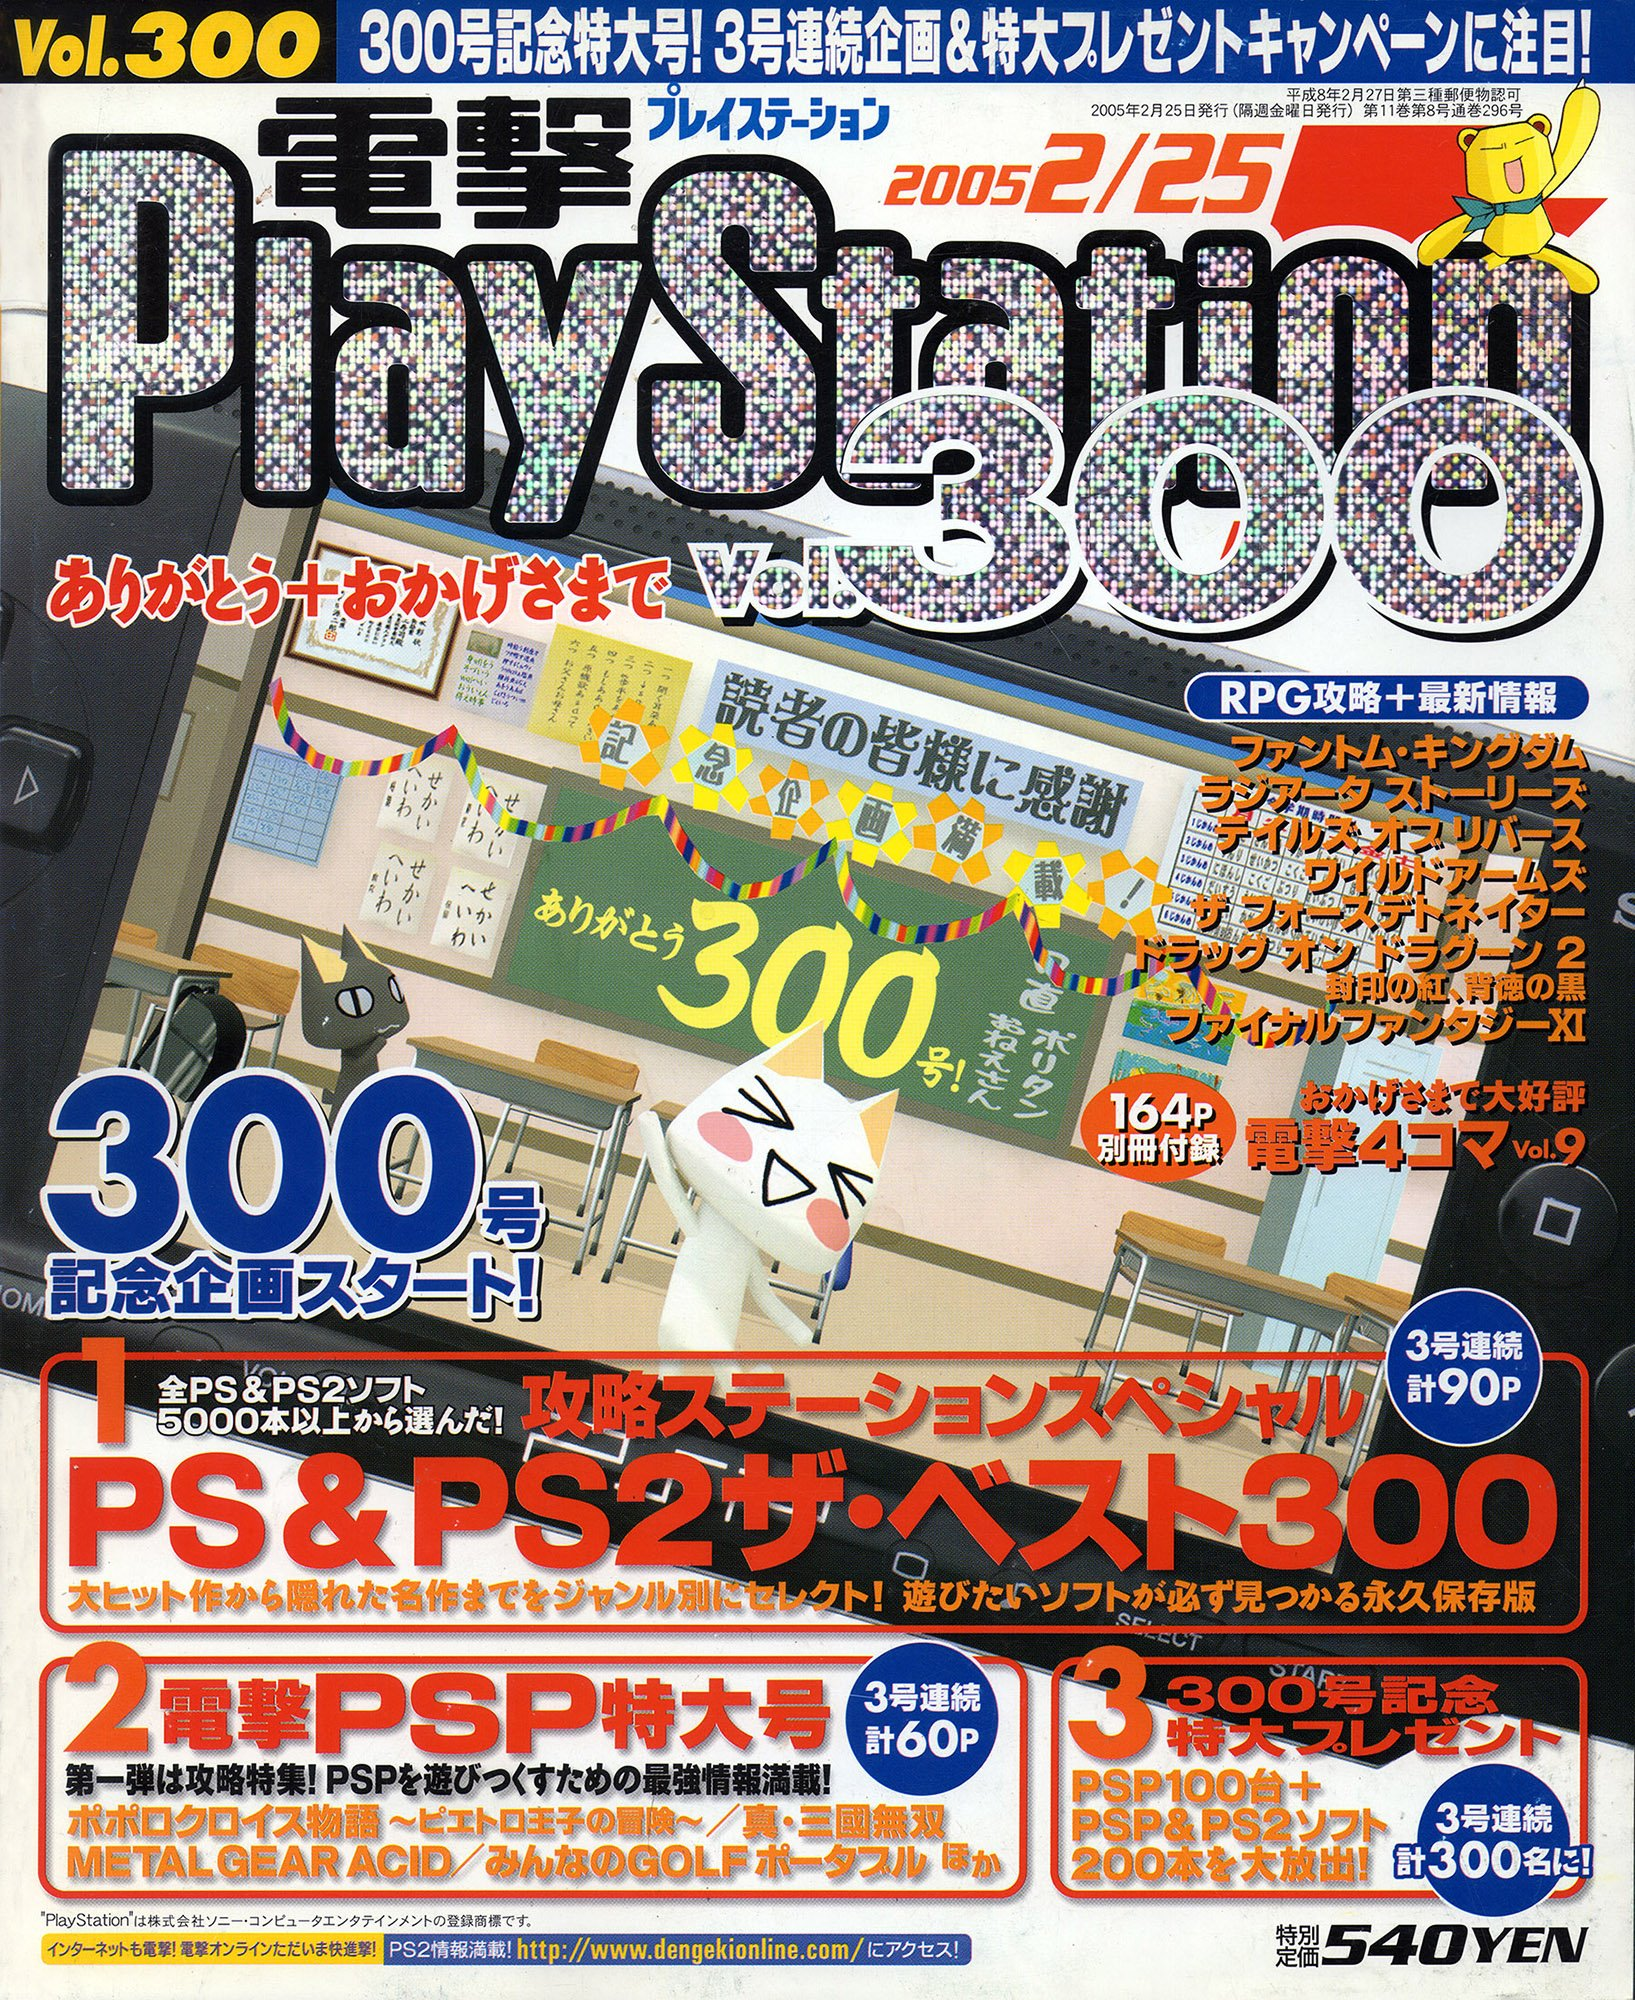 Dengeki PlayStation 300 (February 25, 2005)